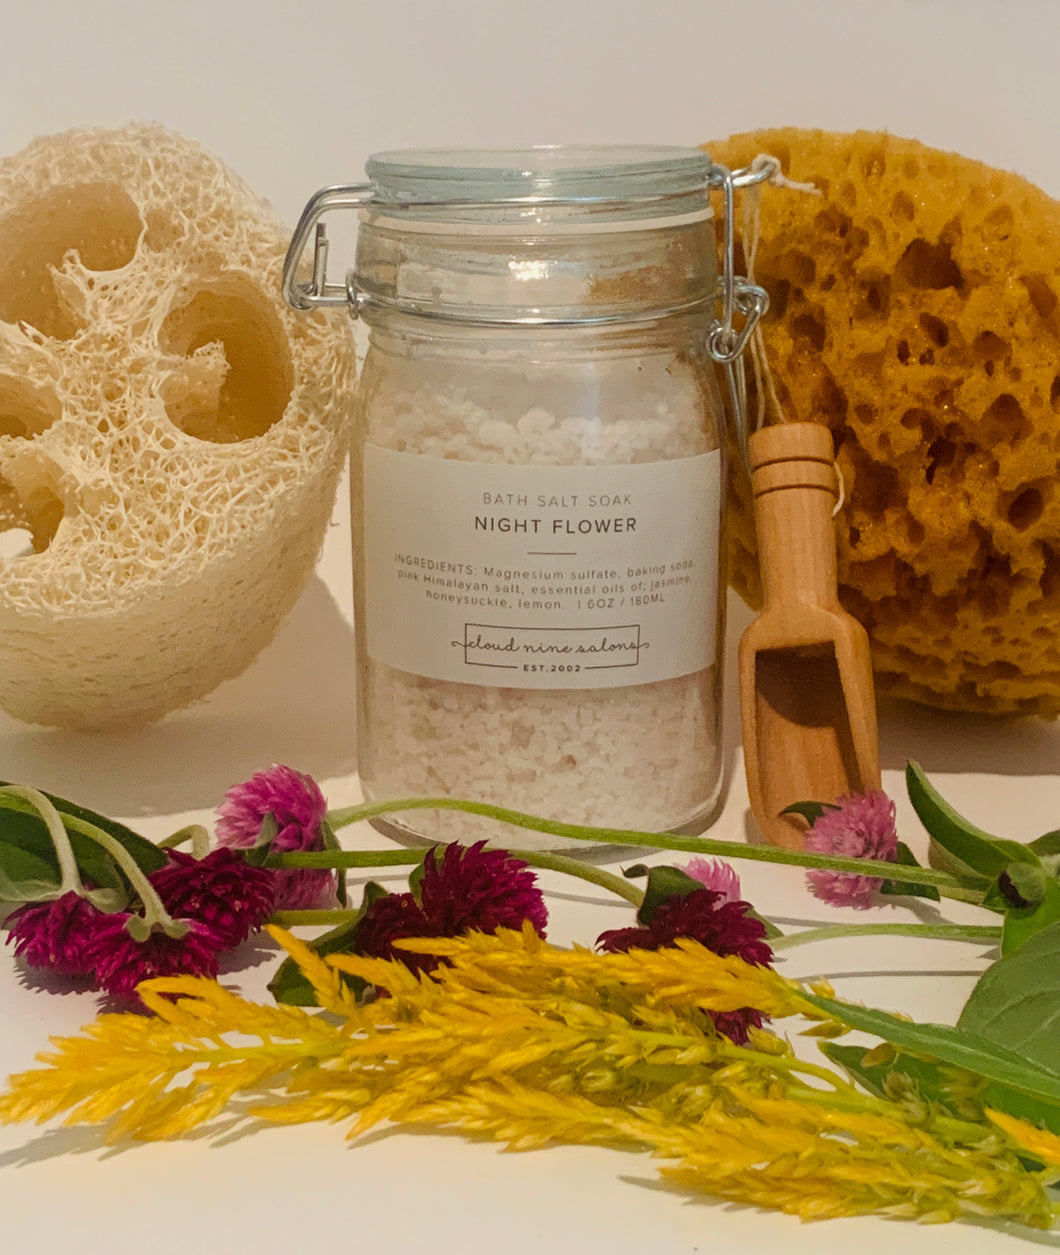 Night Flower bath salt soak Jasmine and honeysuckle